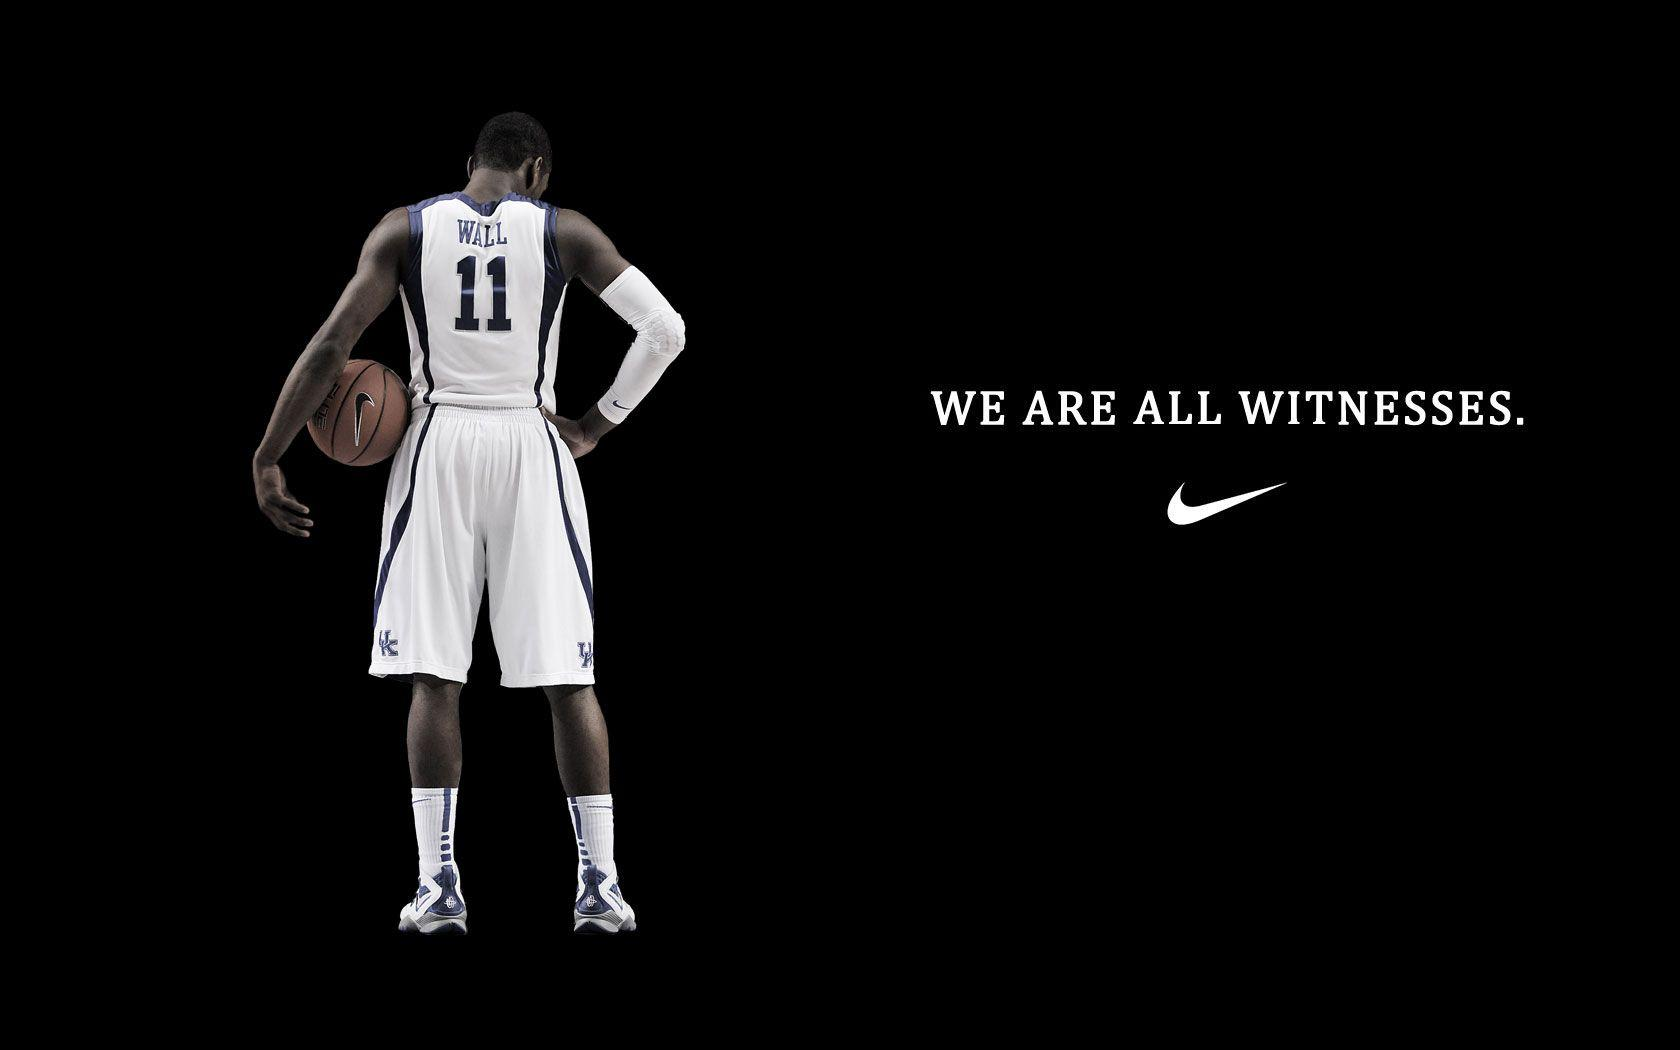 nike basketball wallpapers wallpaper cave